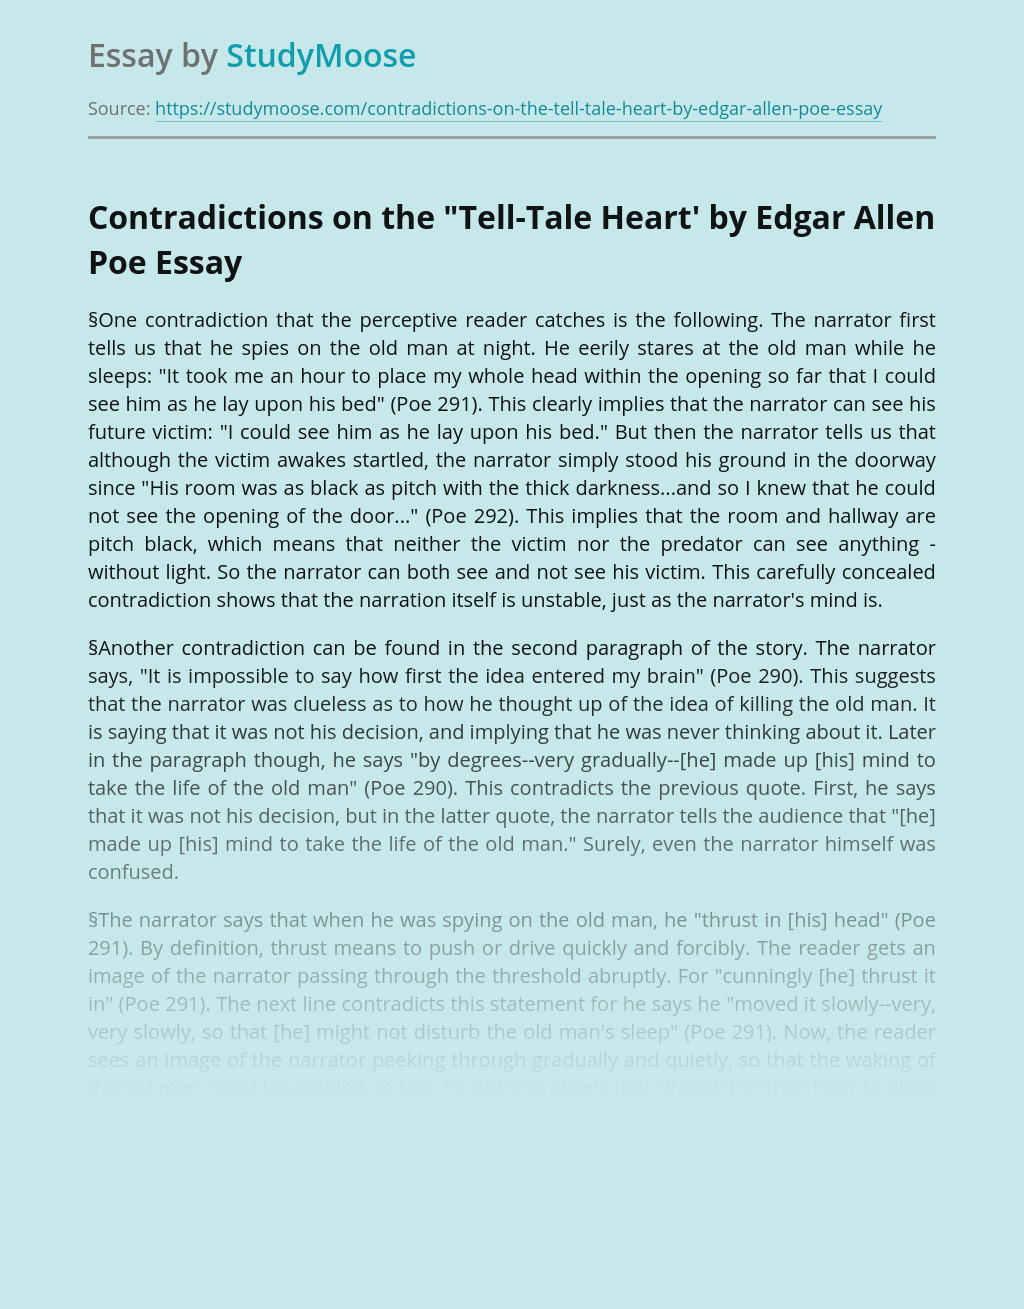 """Contradictions on the """"Tell-Tale Heart' by Edgar Allen Poe"""